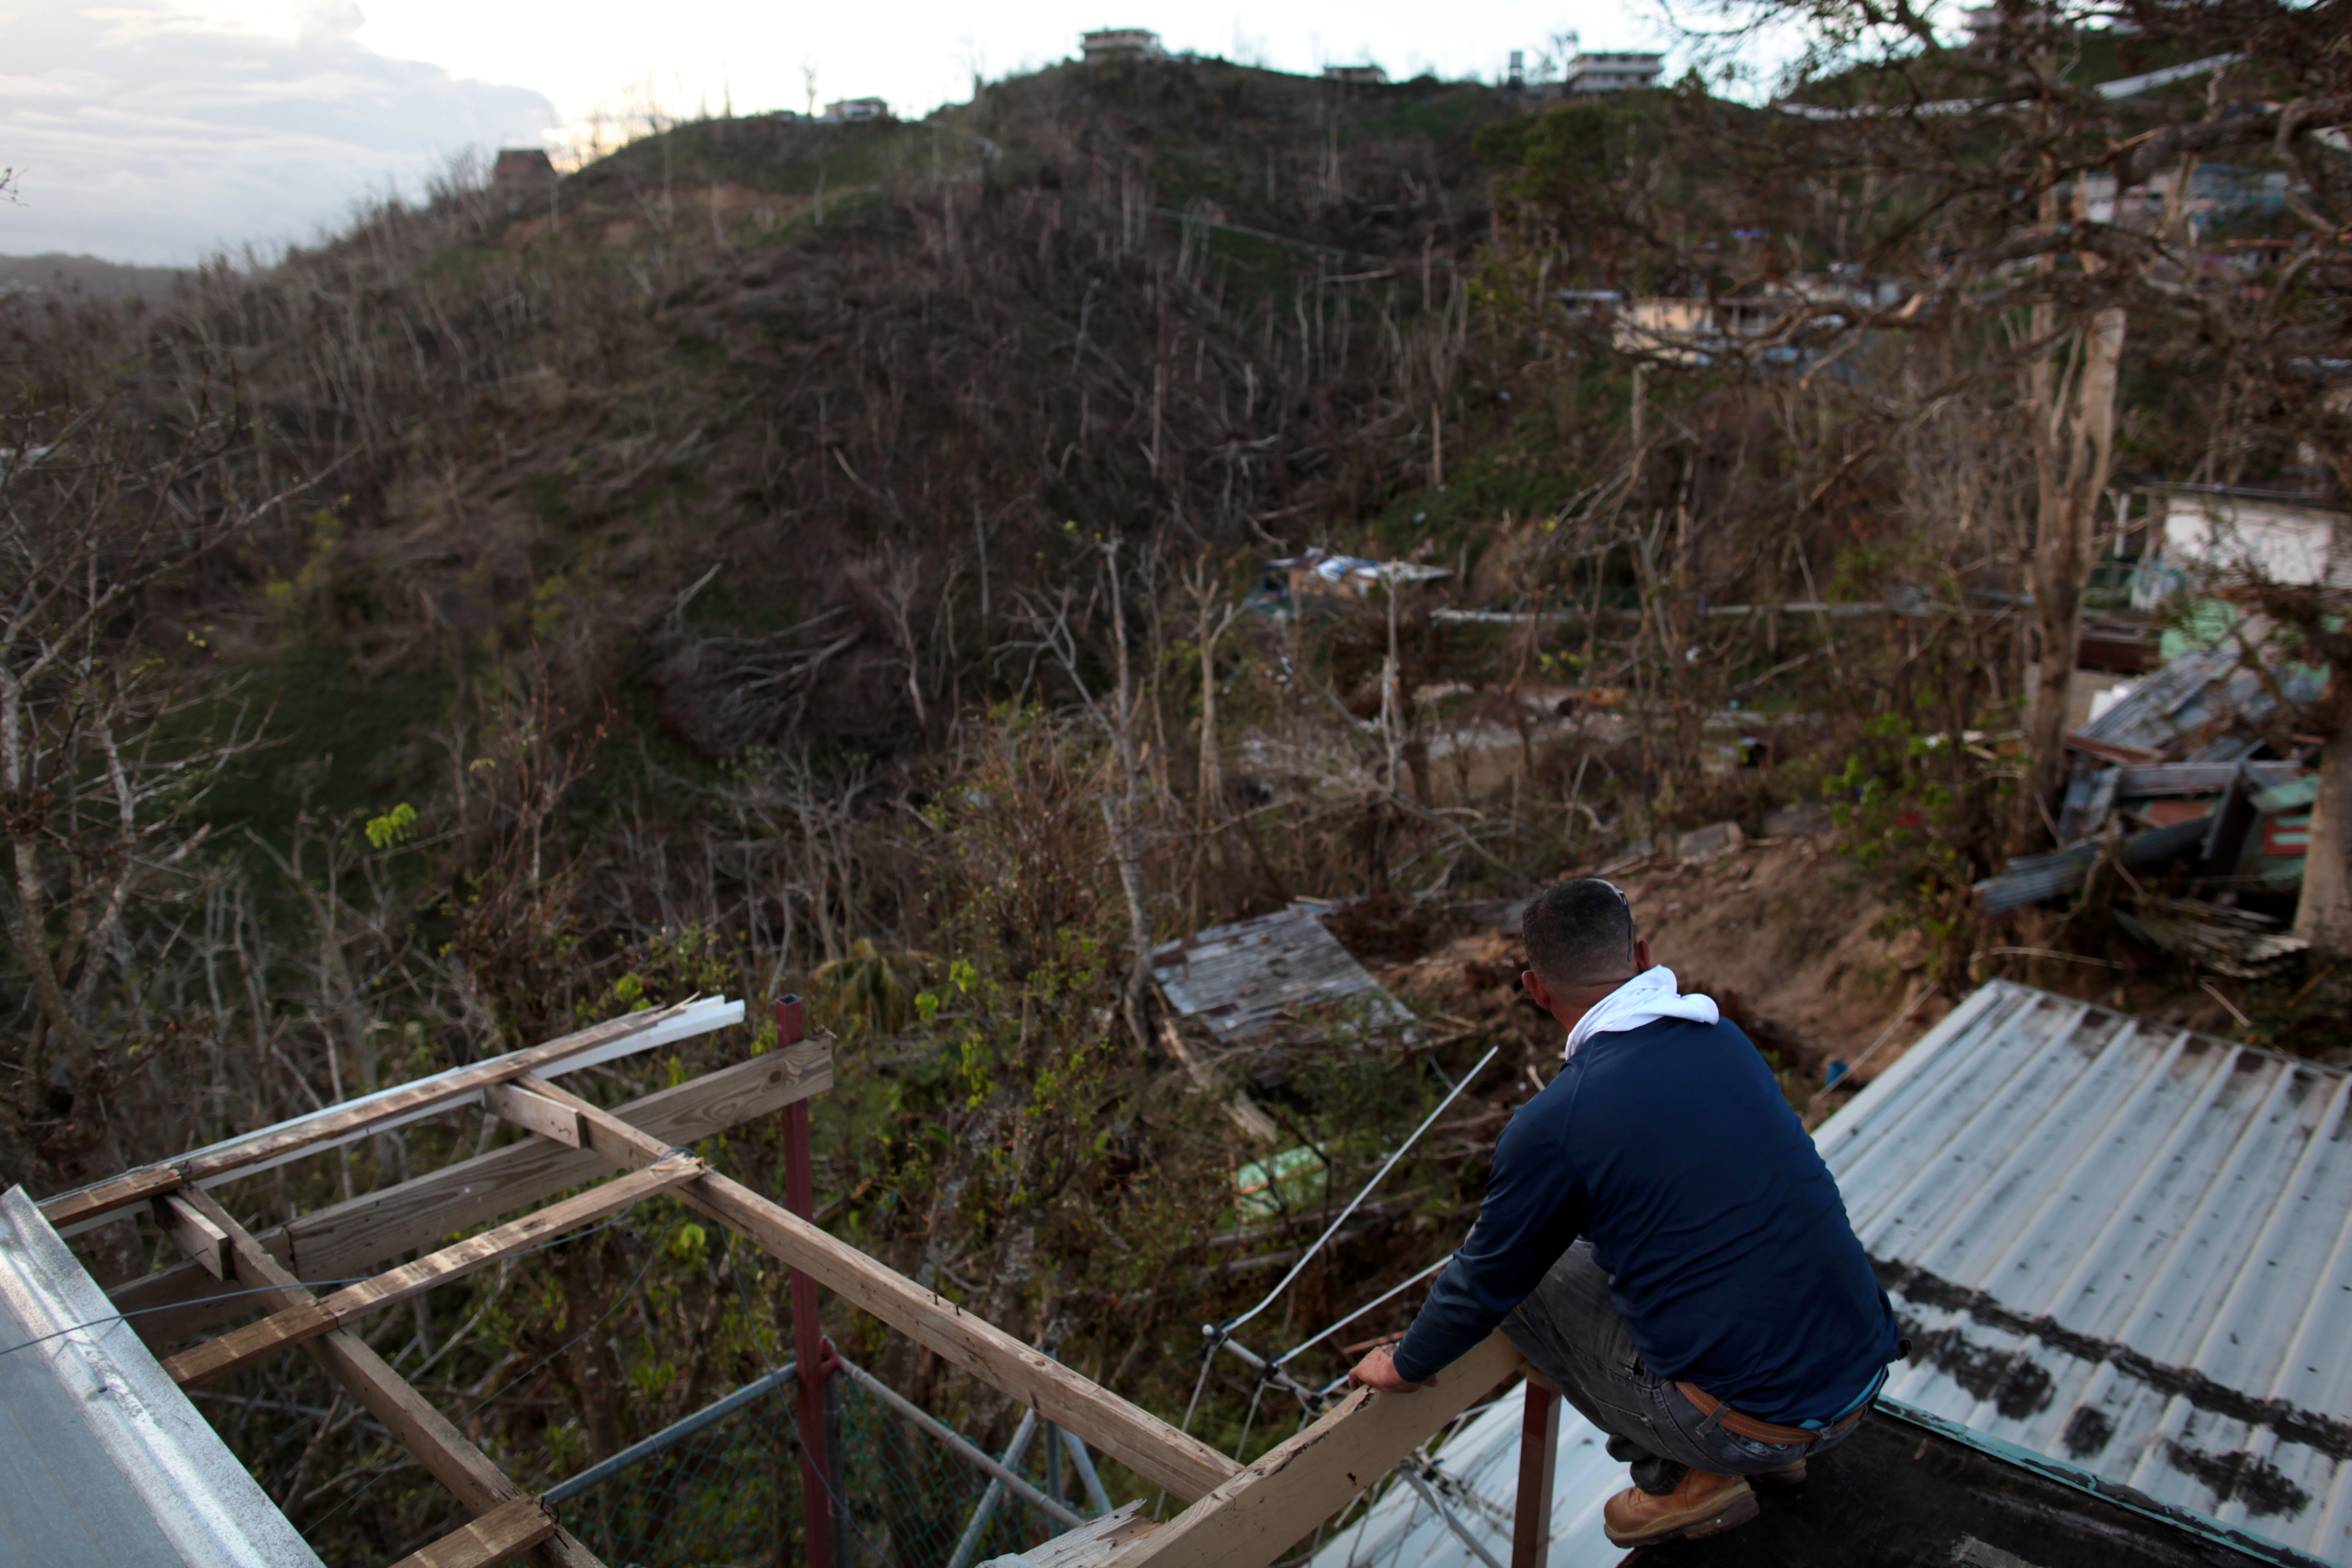 A local resident sits on the roof of his home that was damaged by Hurricane Maria in Guaynabo, Puerto Rico, October 2, 2017. REUTERS/Alvin Baez